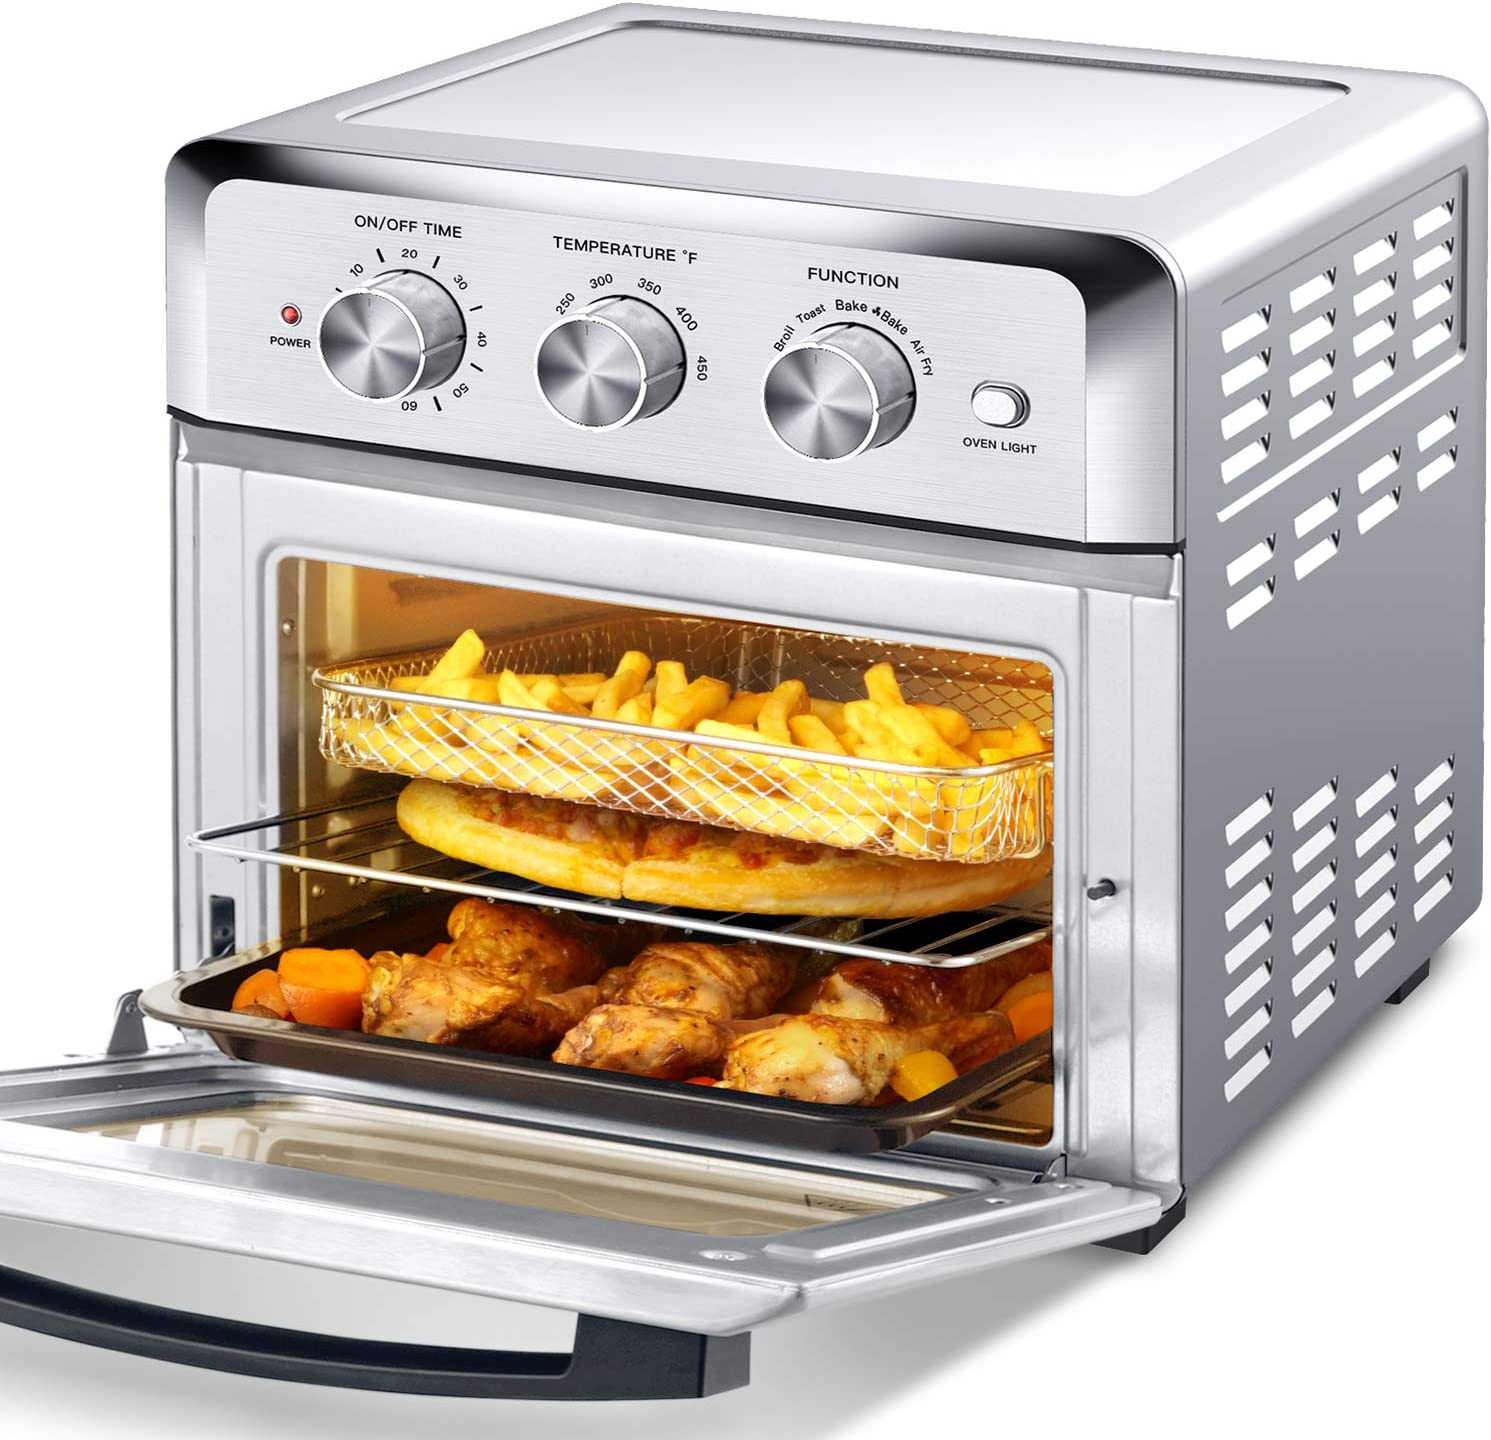 Geek Chef Air Fryer Toaster Oven, 4 Slice 19QT Convection Airfryer Countertop Oven, Roast, Bake, Broil, Reheat, Fry Oil-Free, Cooking 4 Accessories Included, Stainless Steel,1500W